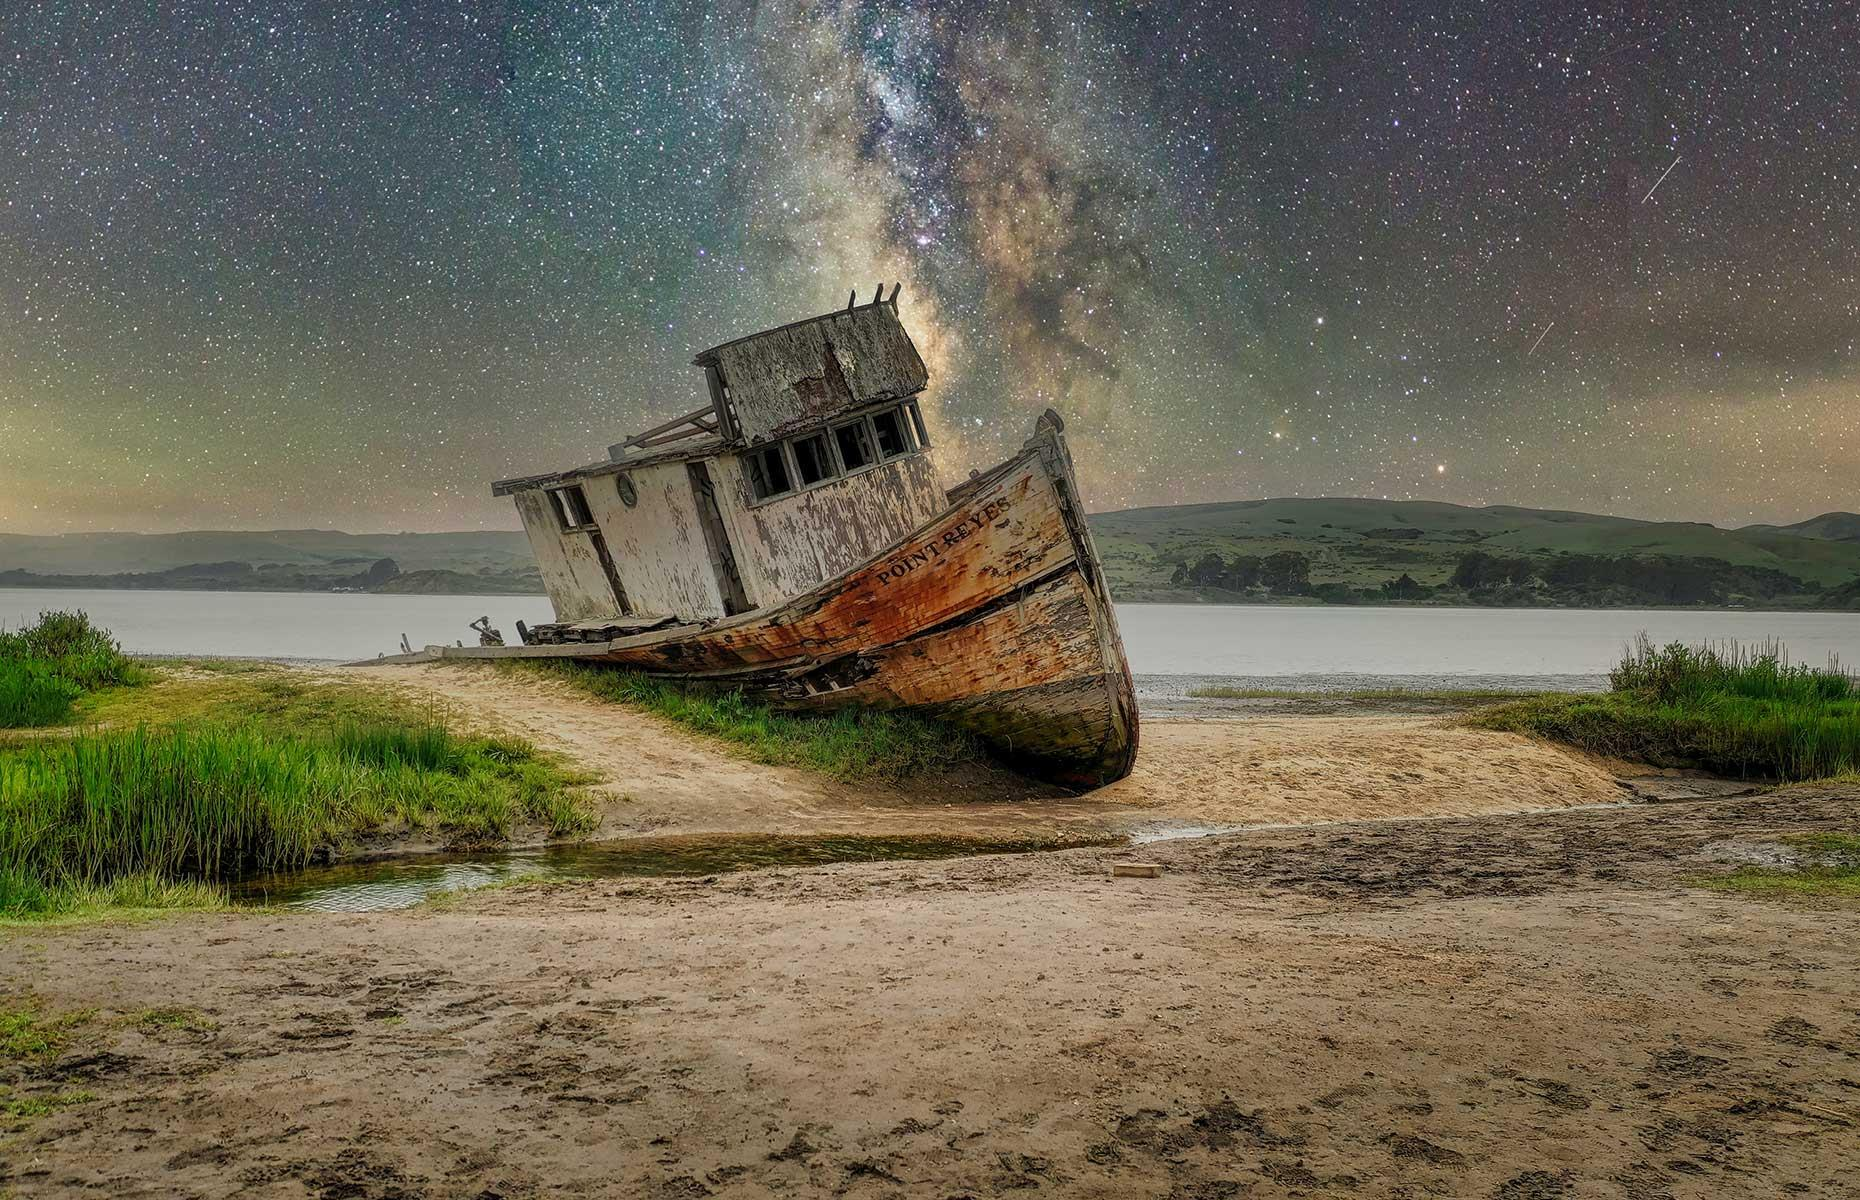 Slide 33 of 35: Located in Tomales Bay this is another shipwreck that's beloved by photographers, with the best shots taken during low tide. Here the wreck is captured at night by professional photographer Cameron Venti, flanked by the Milky Way. But its popularity also means it's under threat – in 2016 a fire damaged the rear of the ship and the exterior and interior have been graffitied too. Love this? Now discover the abandoned hotels, resorts and airports that are frozen in time.